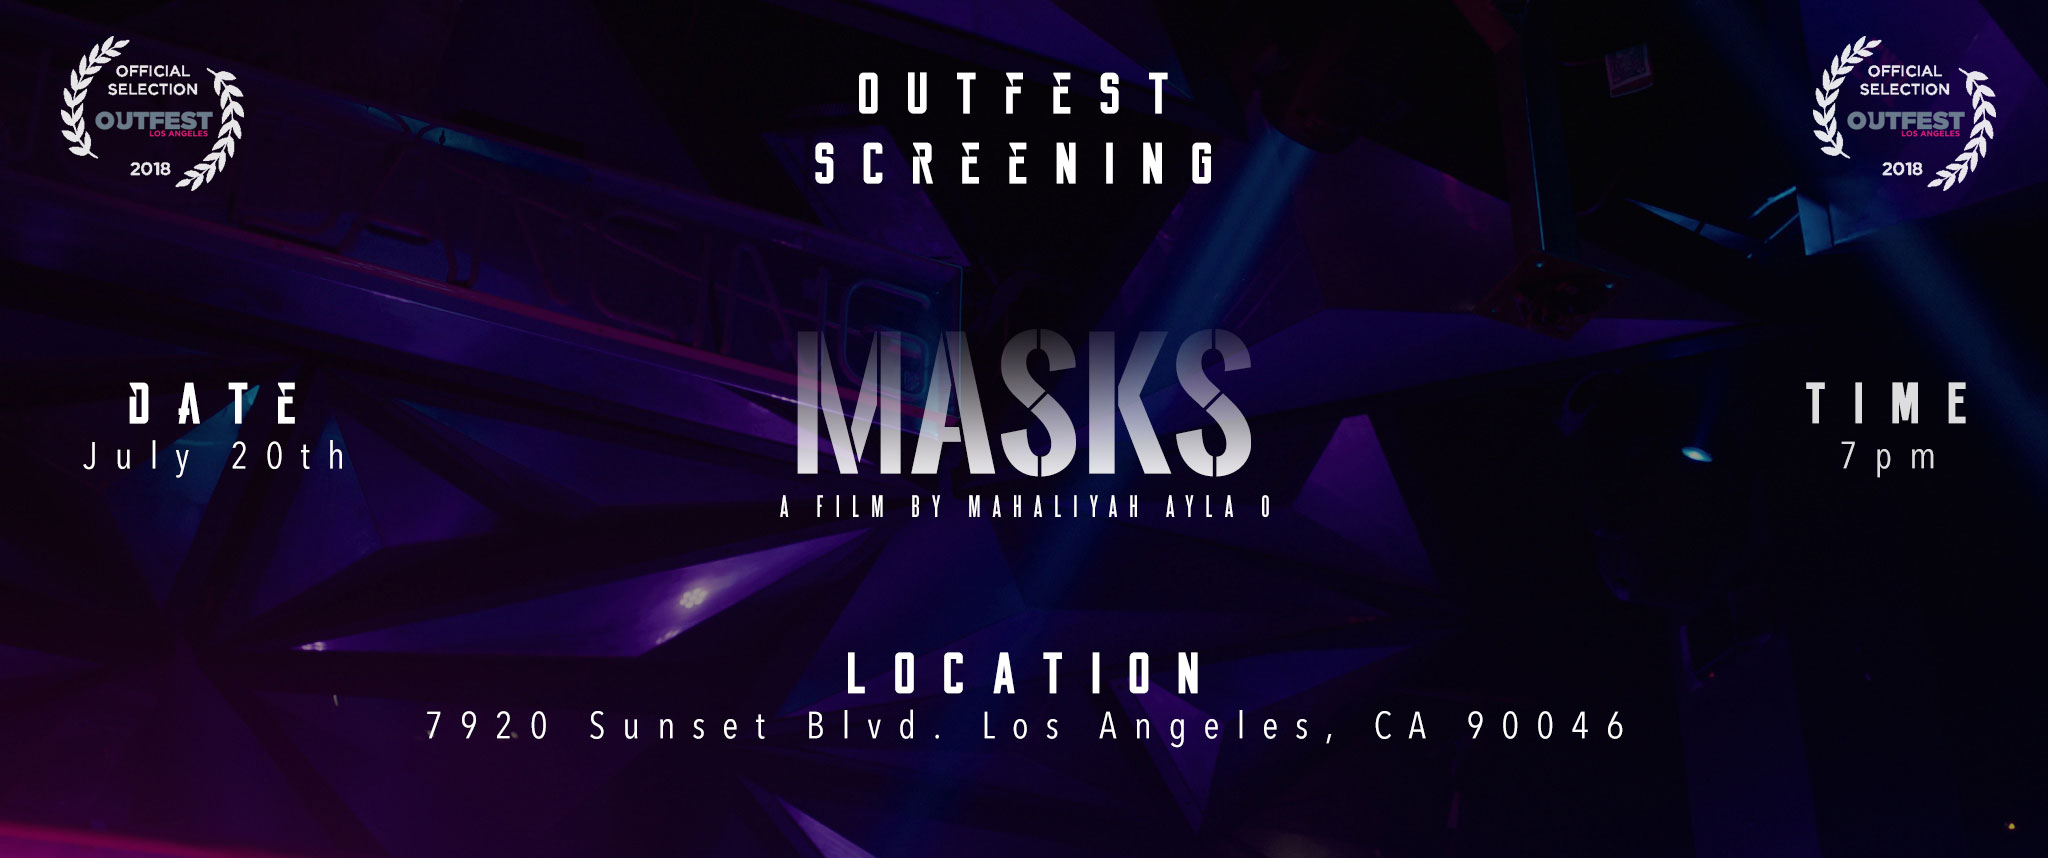 MASKS---Outfest---Screening-Details.jpg